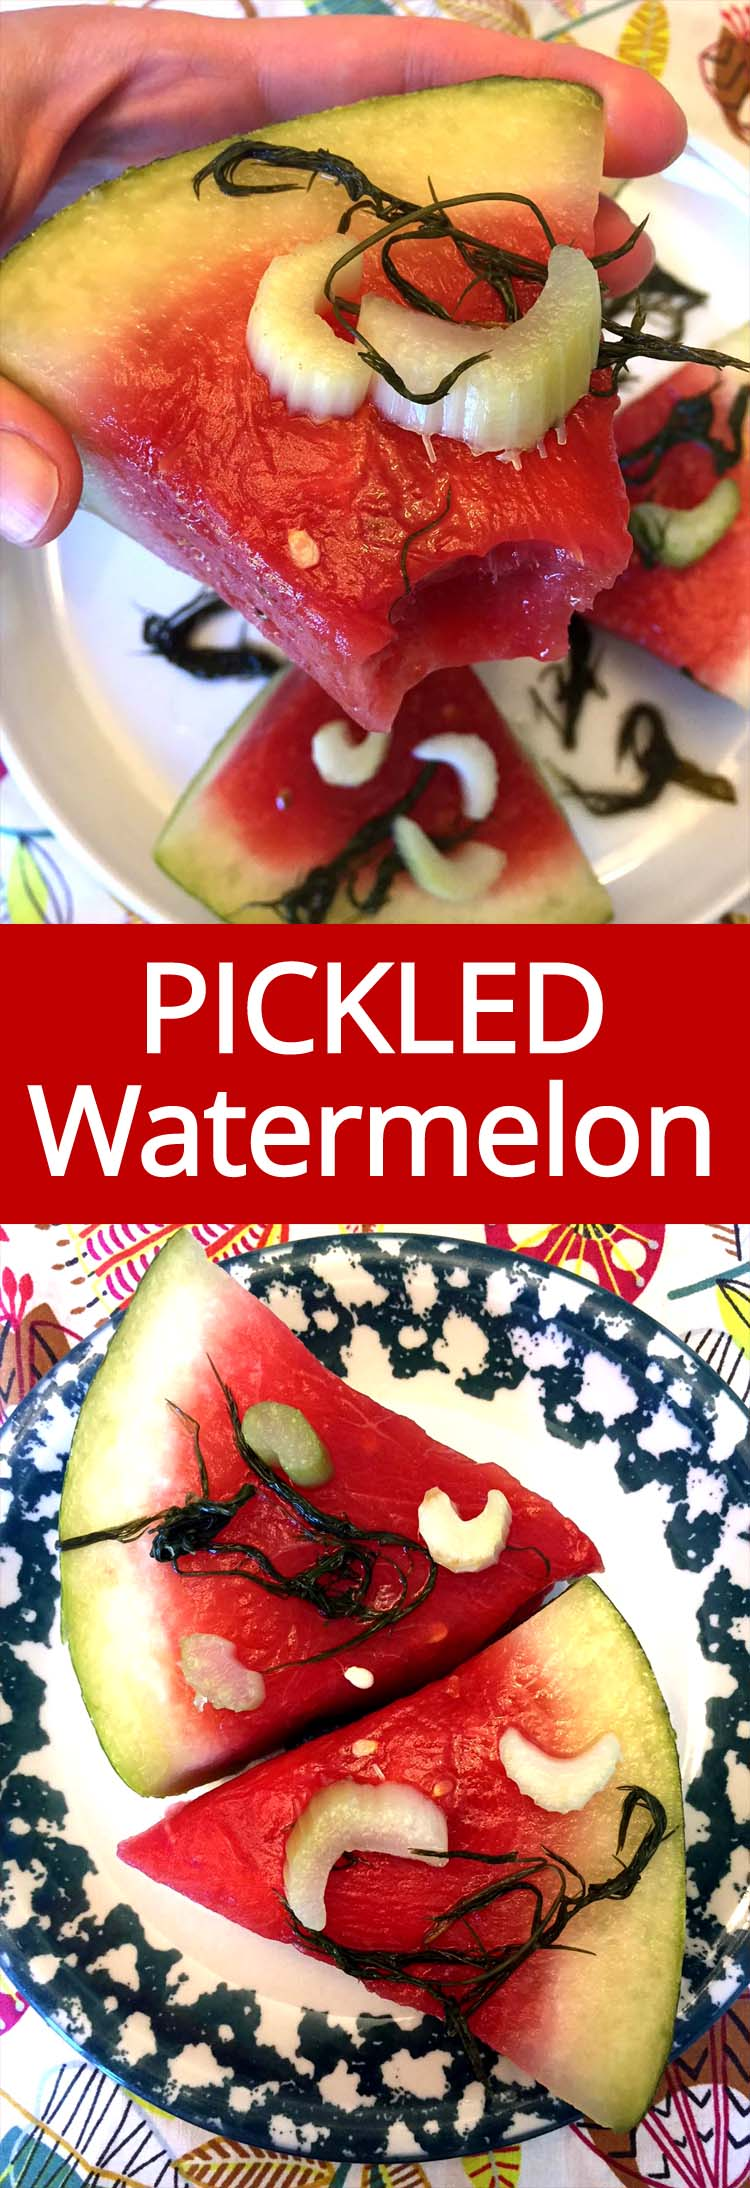 OMG PICKLED WATERMELON! This stuff is so addictive! Sweet & savory - out of this world! I just can't stop eating these watermelon pickles!